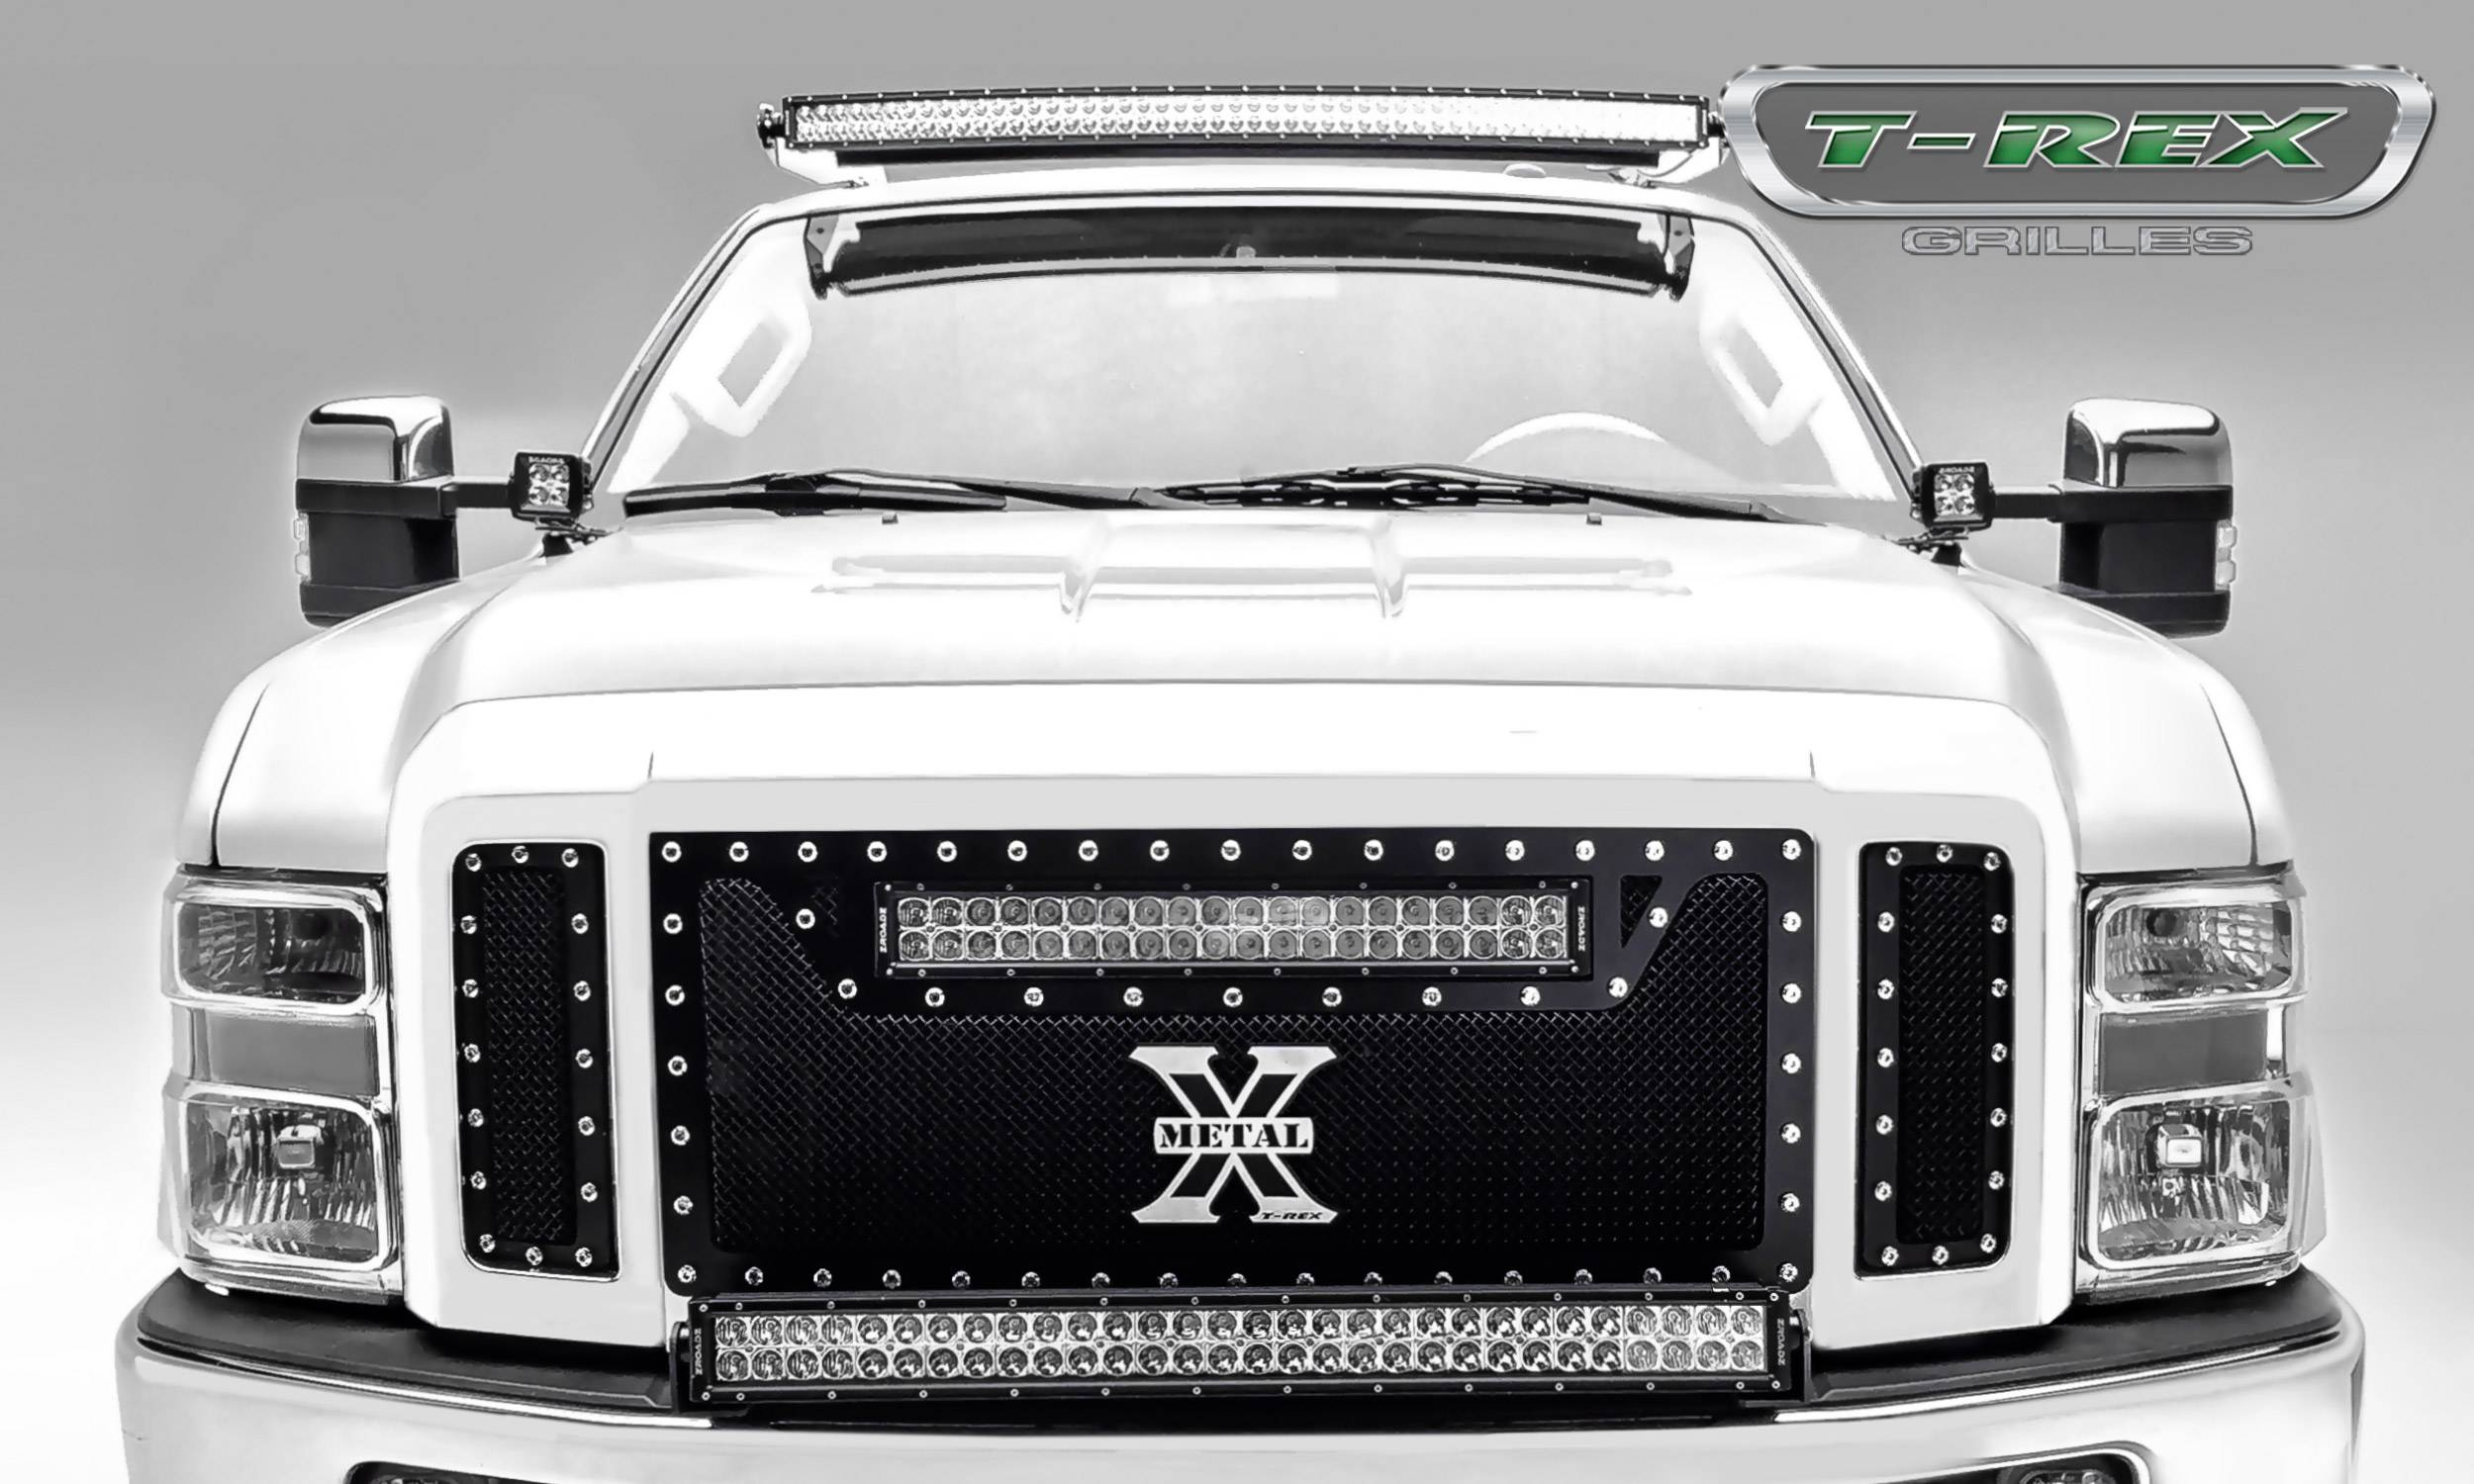 T-REX Grilles - Ford Super Duty TORCH Series  - 3 Pc Main Grille w/ 20 Inch LED Light Bar - ALL Black w/ chrome studs - Pt # 6315451